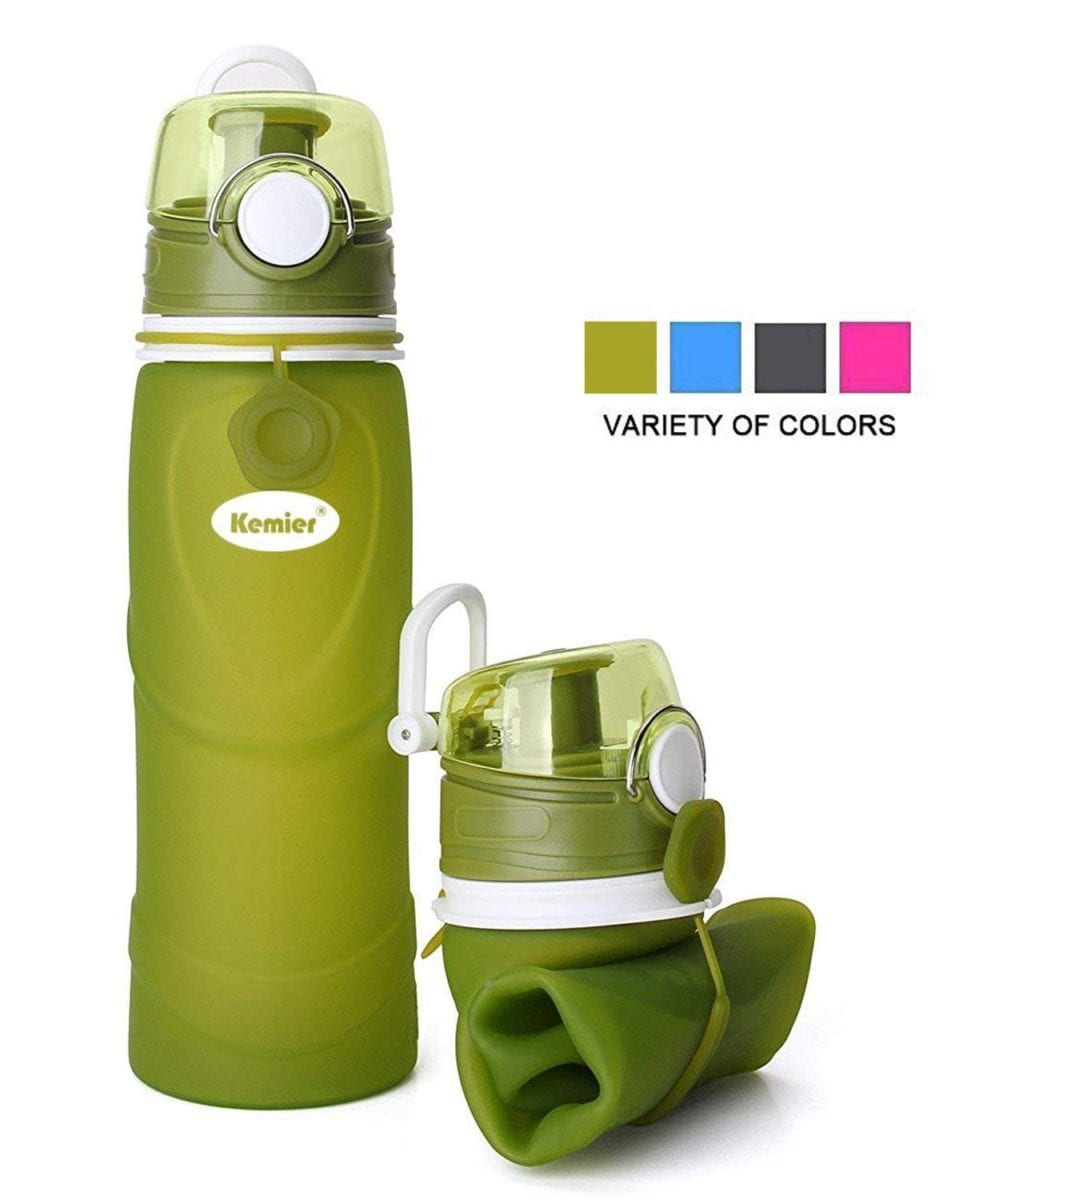 Kemier Collapsible Silicone Water Bottles can roll up and is great gift ideas for travelers